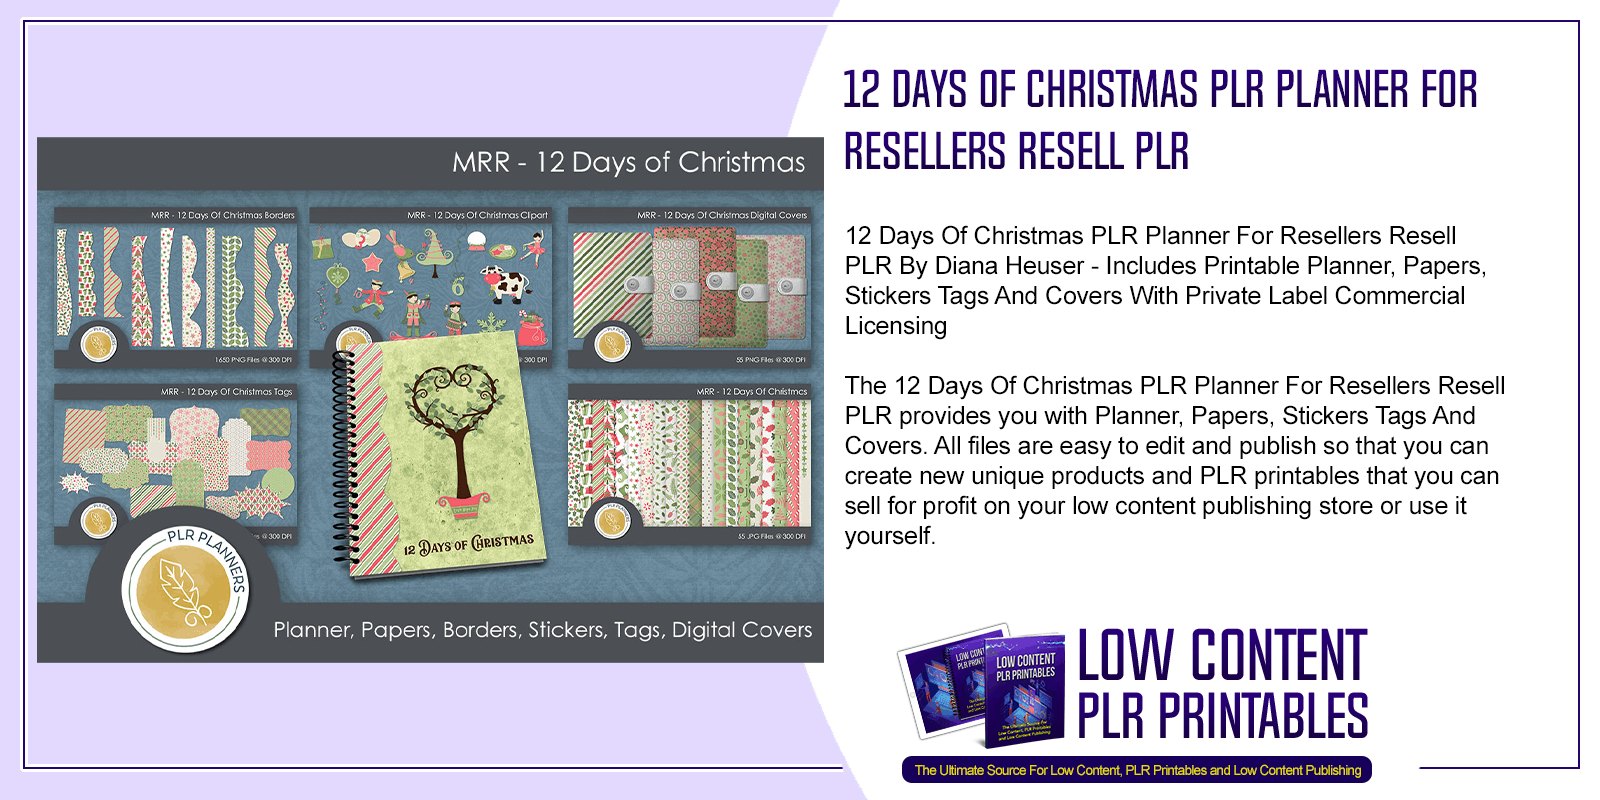 12 Days Of Christmas PLR Planner For Resellers Resell PLR